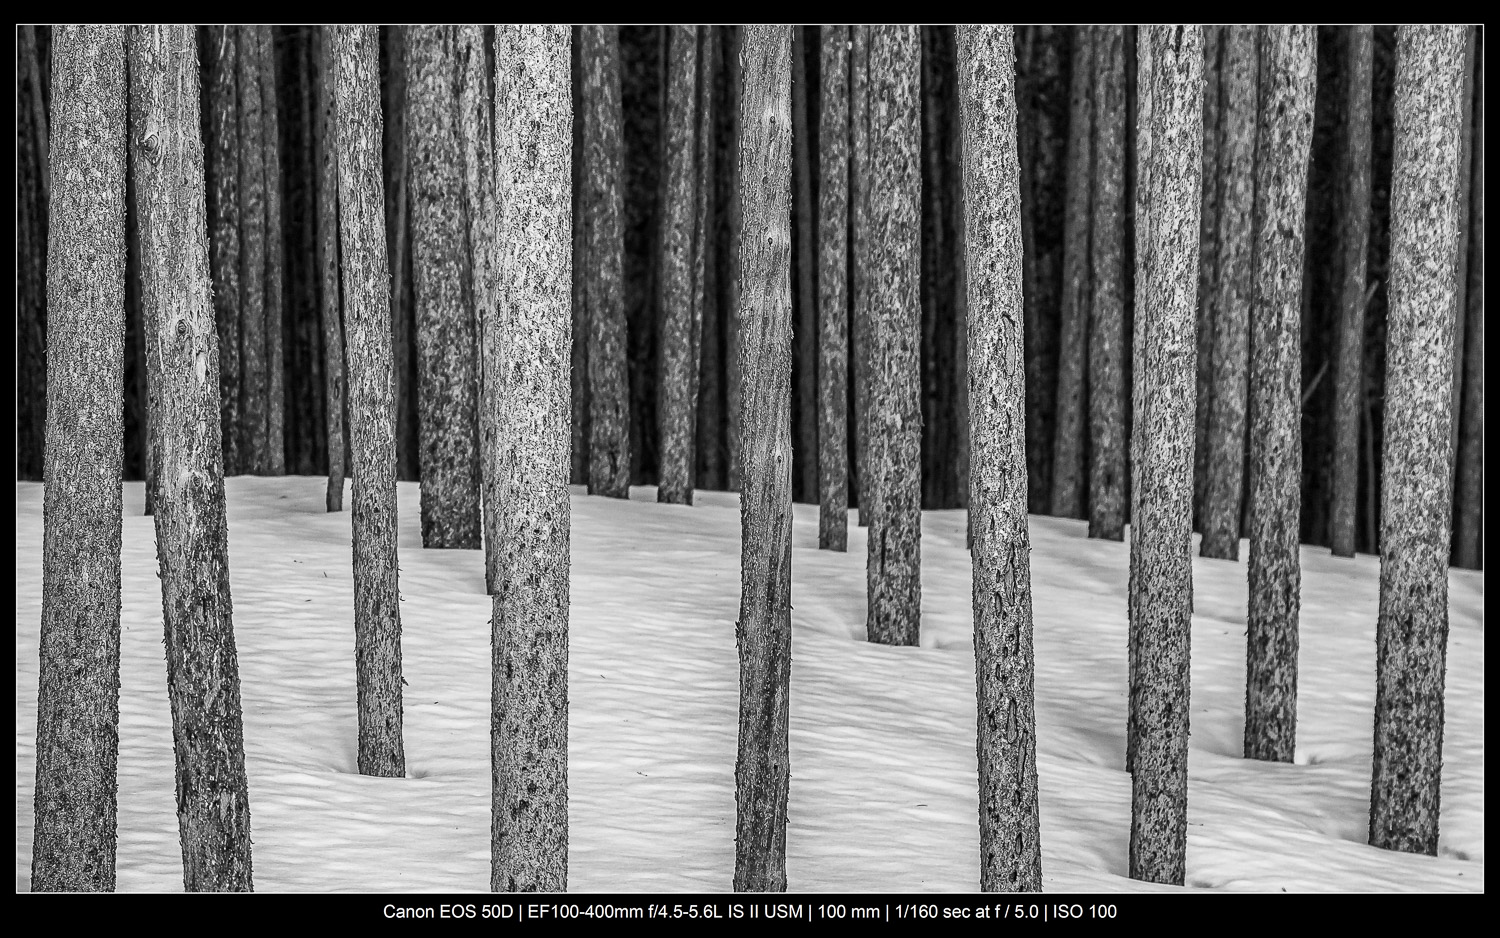 Focus stacking trees